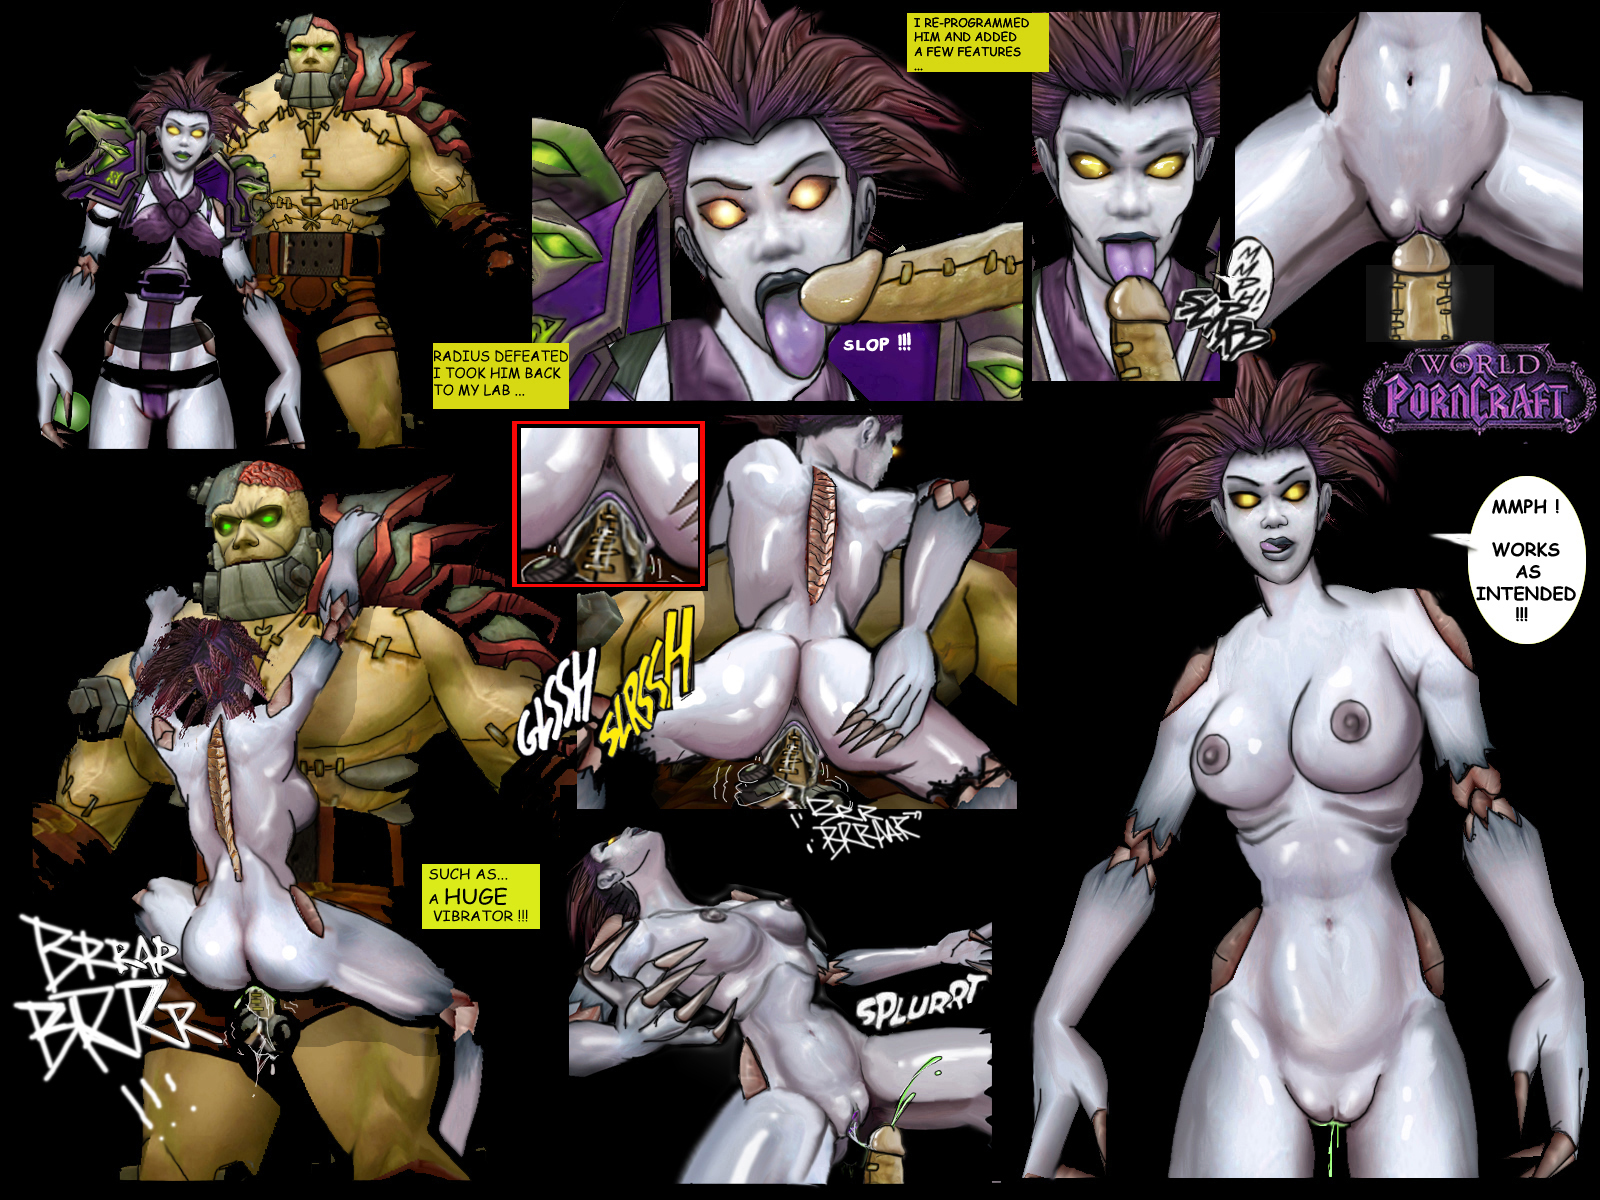 World of warcraft porno fuck undead sex pics